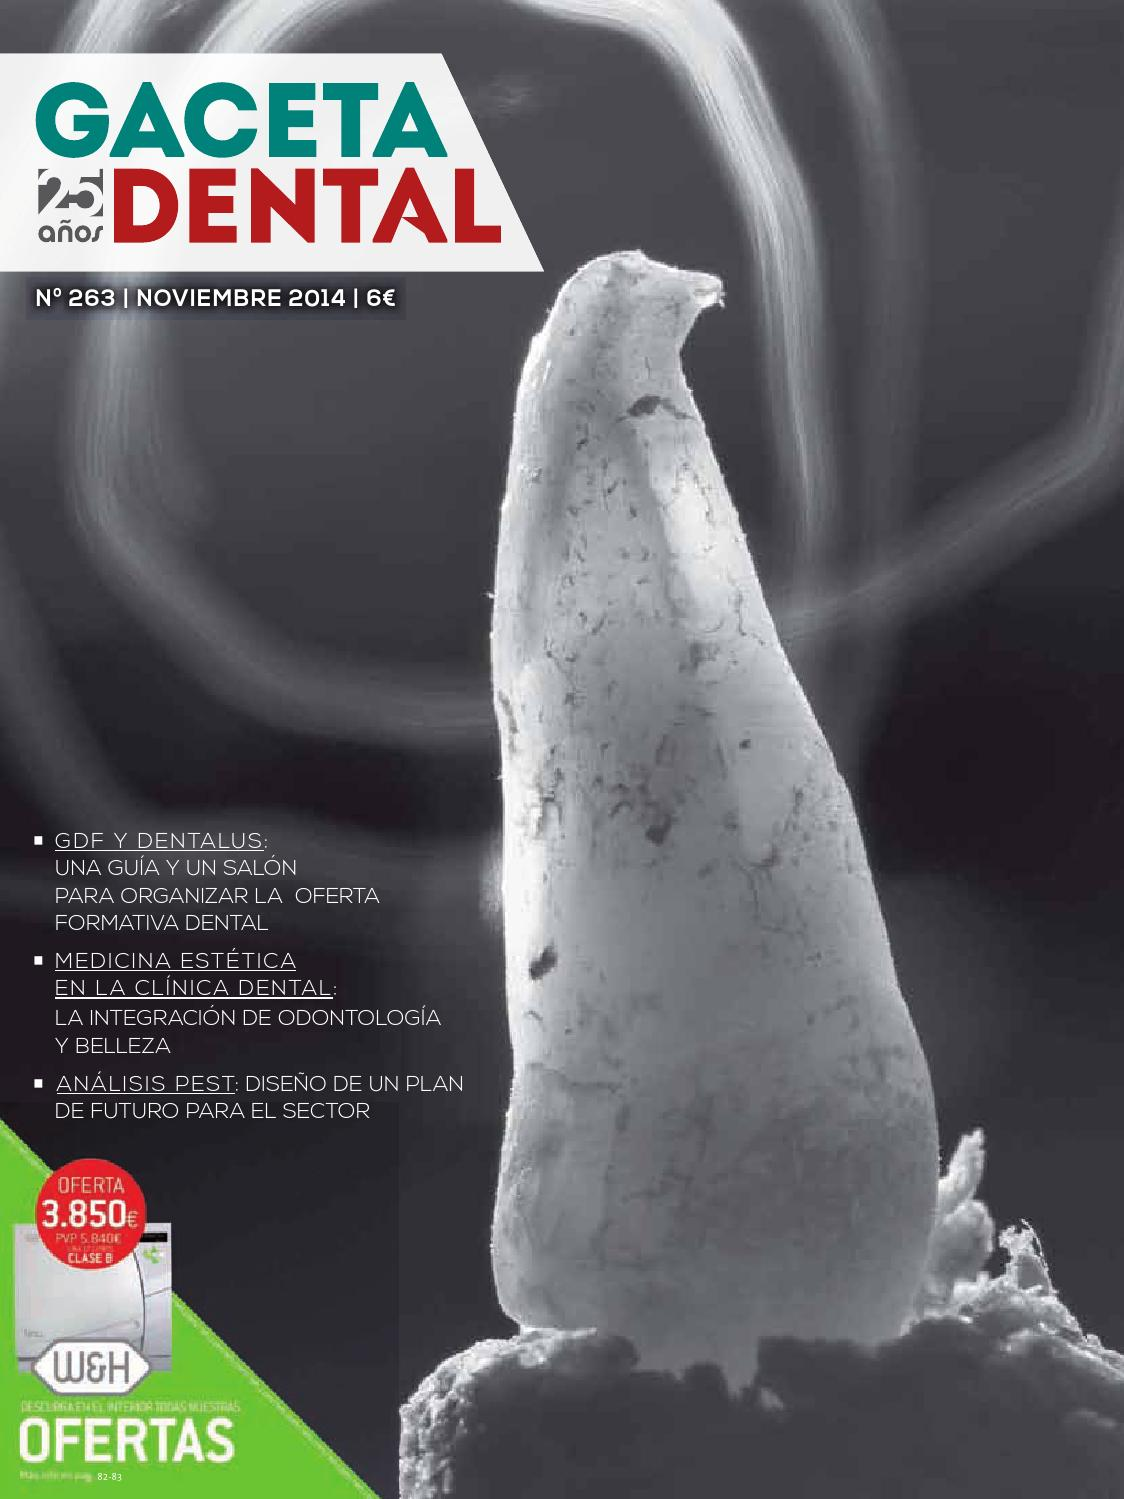 Gaceta Dental - 263 by Peldaño - issuu 80696b9b0413